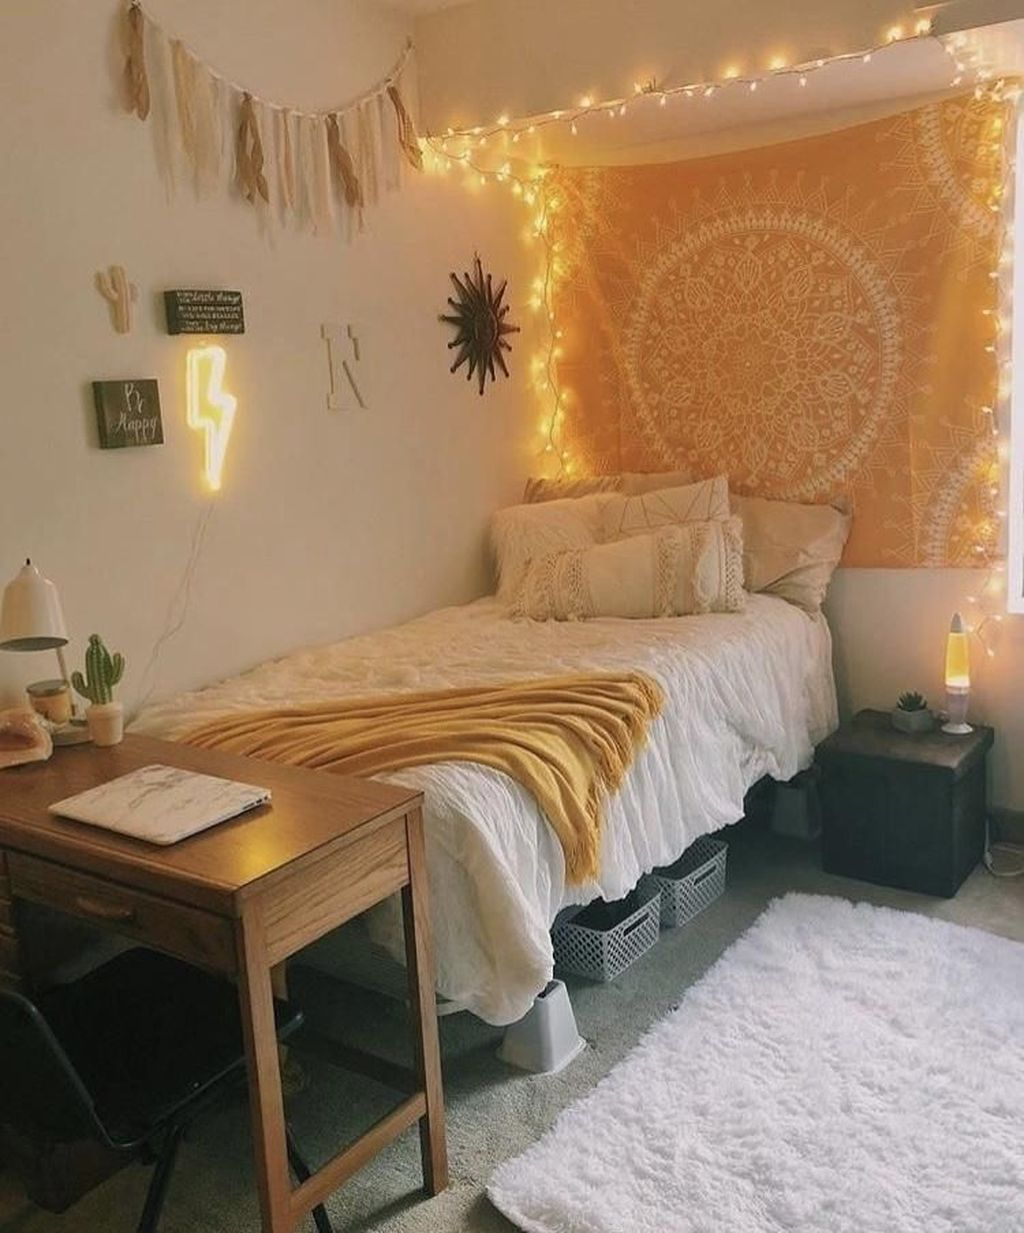 The Best DIY Bedroom Decor Ideas You Have To Try 23